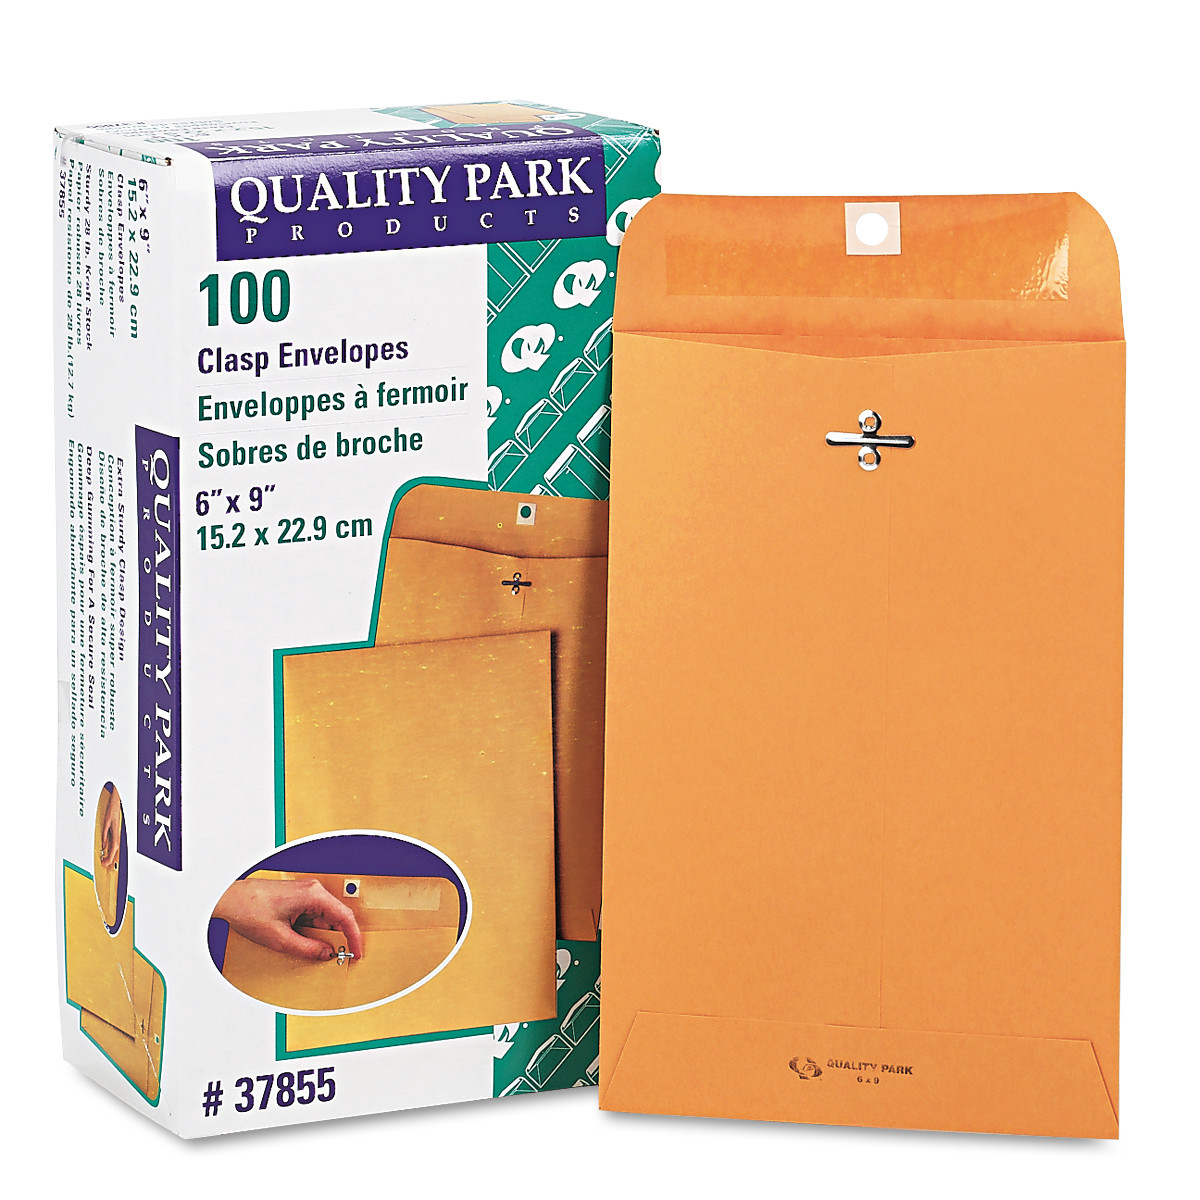 Clasp Envelope, #55, 6 x 9, 28lb, Brown Kraft, 100/Box